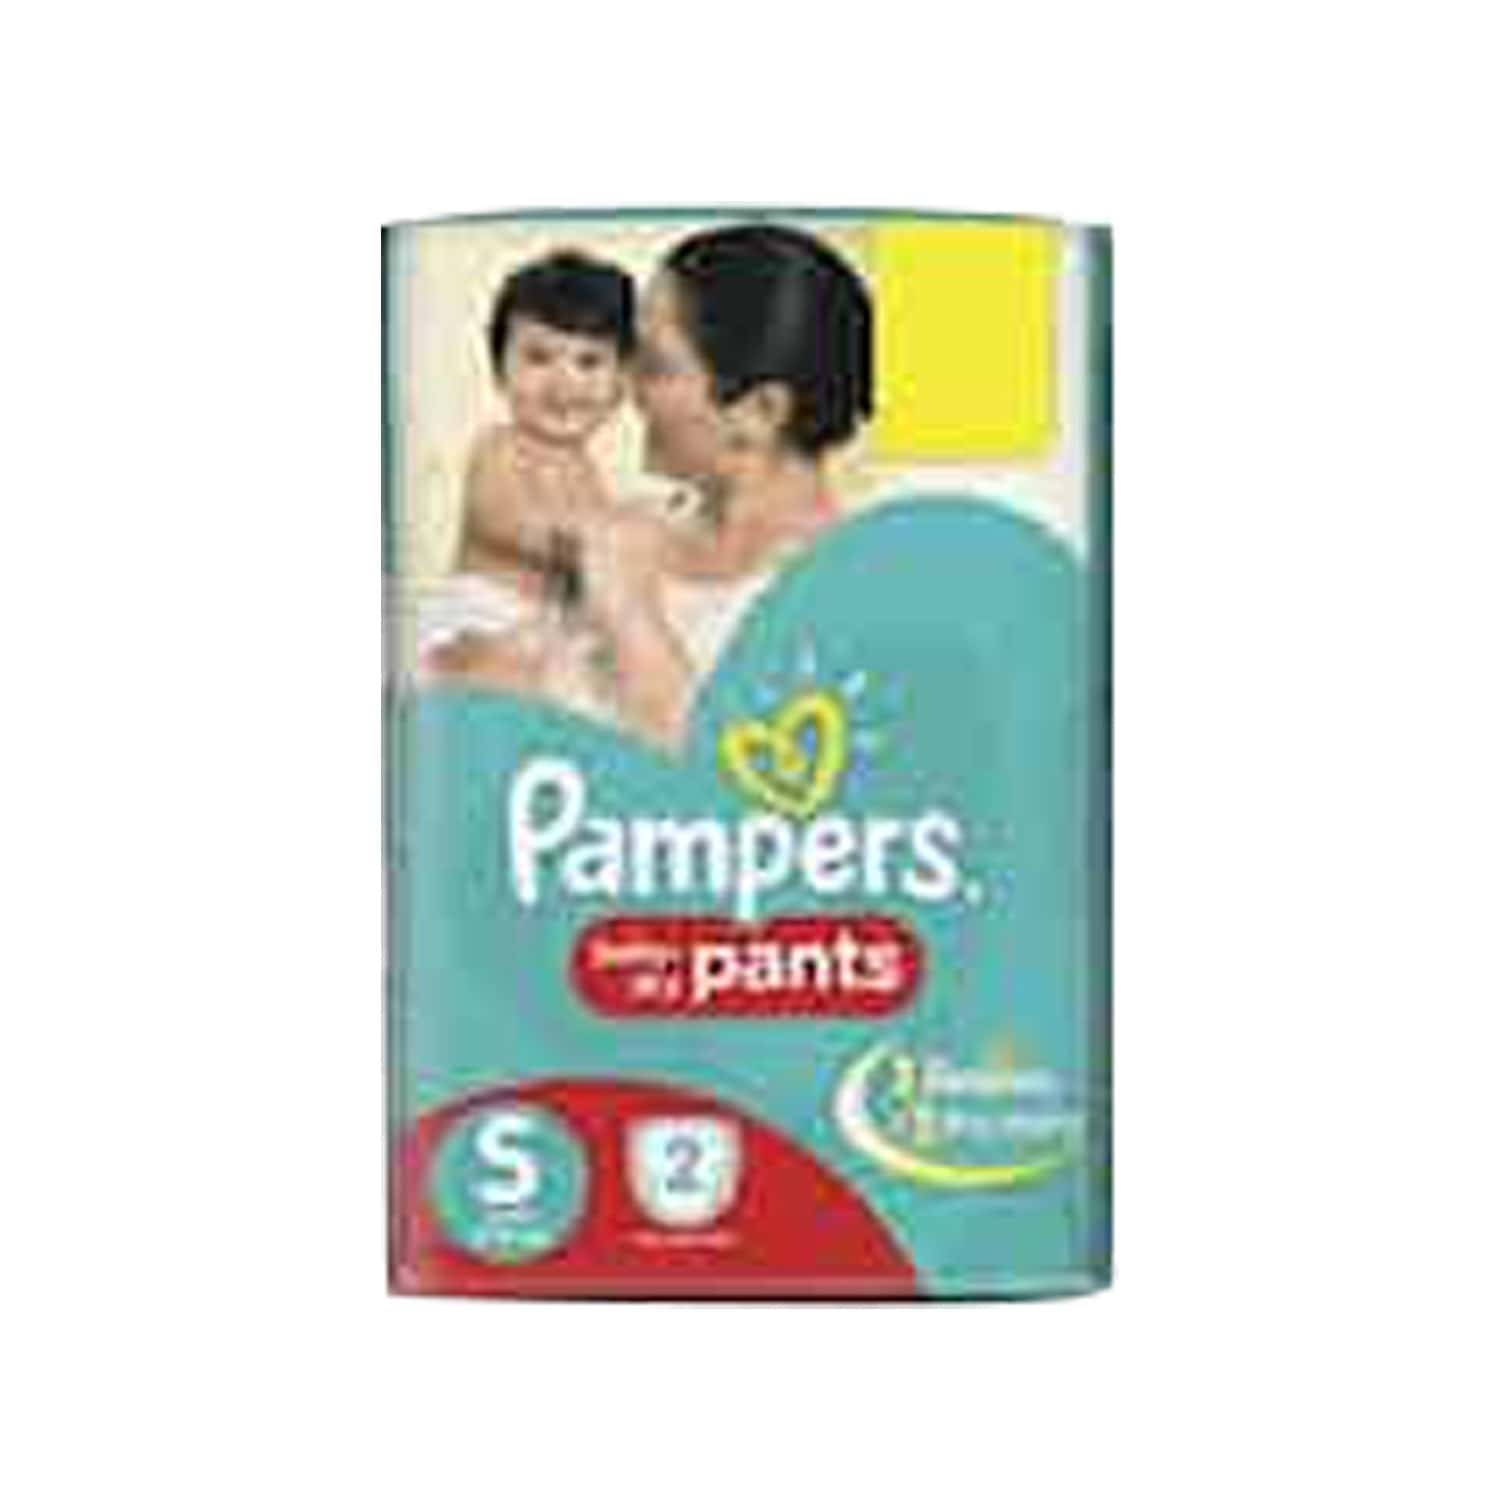 Pampers Diaper Pants Small 2 Pieces